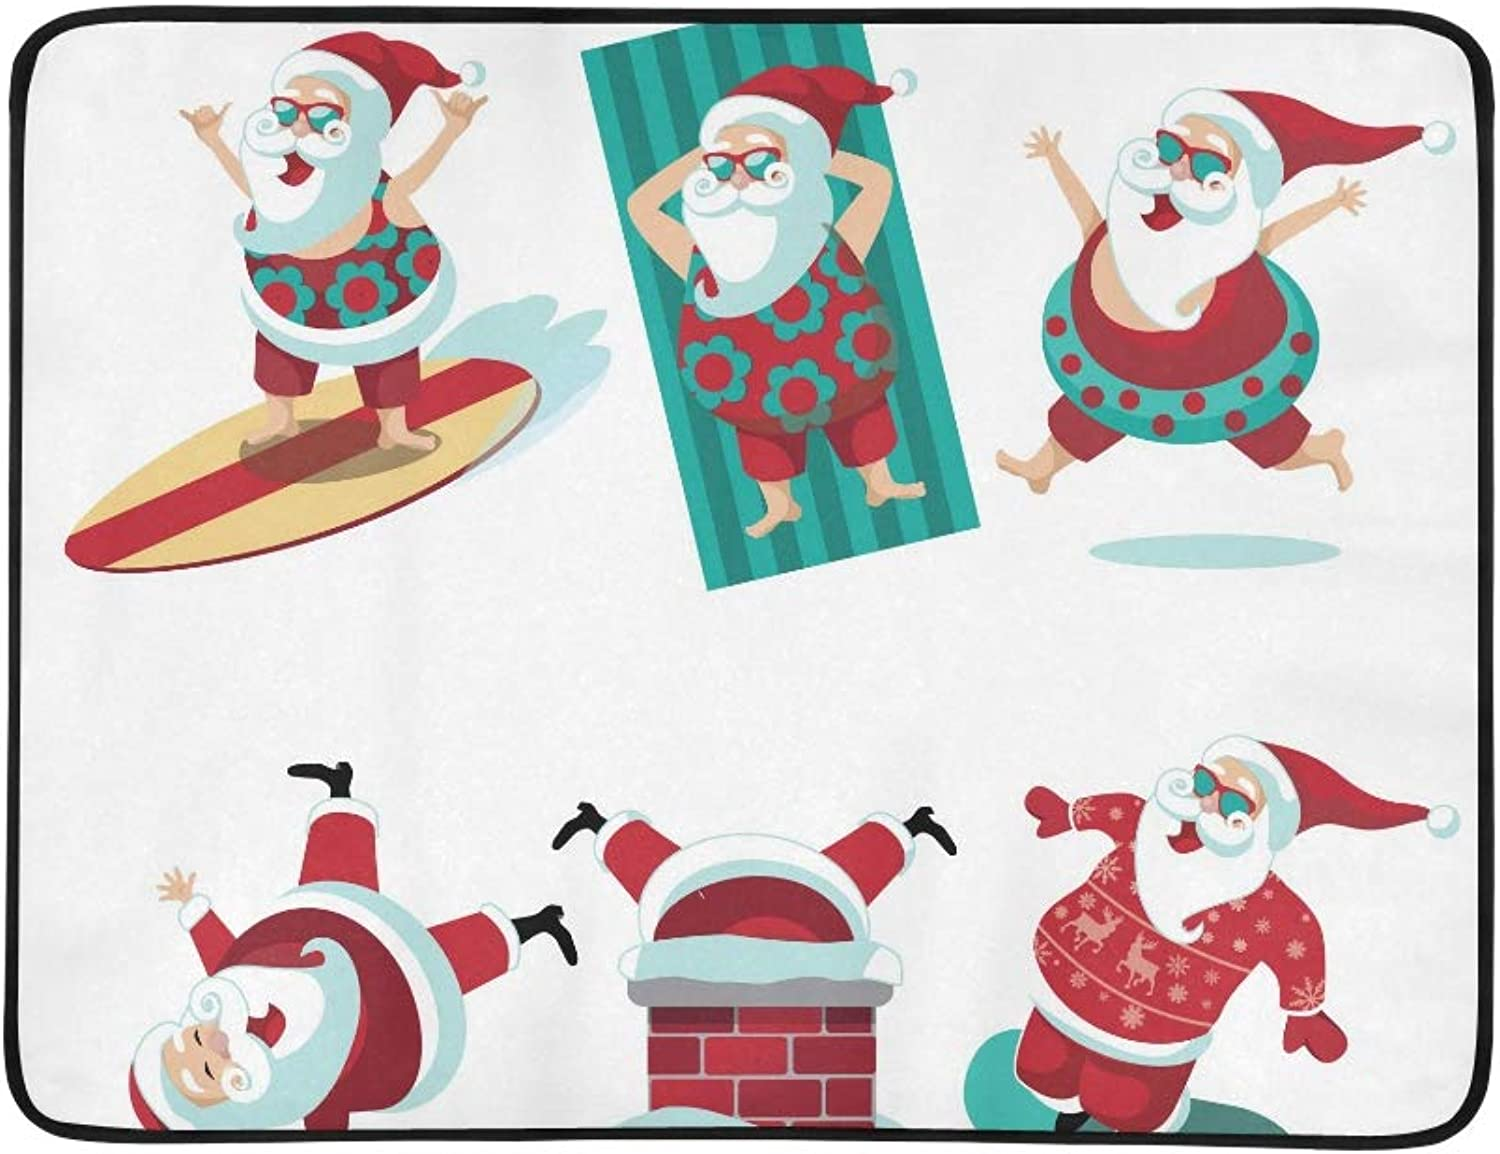 Cartoon Santa Claus Summer and Winter Collection Pattern Portable and Foldable Blanket Mat 60x78 Inch Handy Mat for Camping Picnic Beach Indoor Outdoor Travel